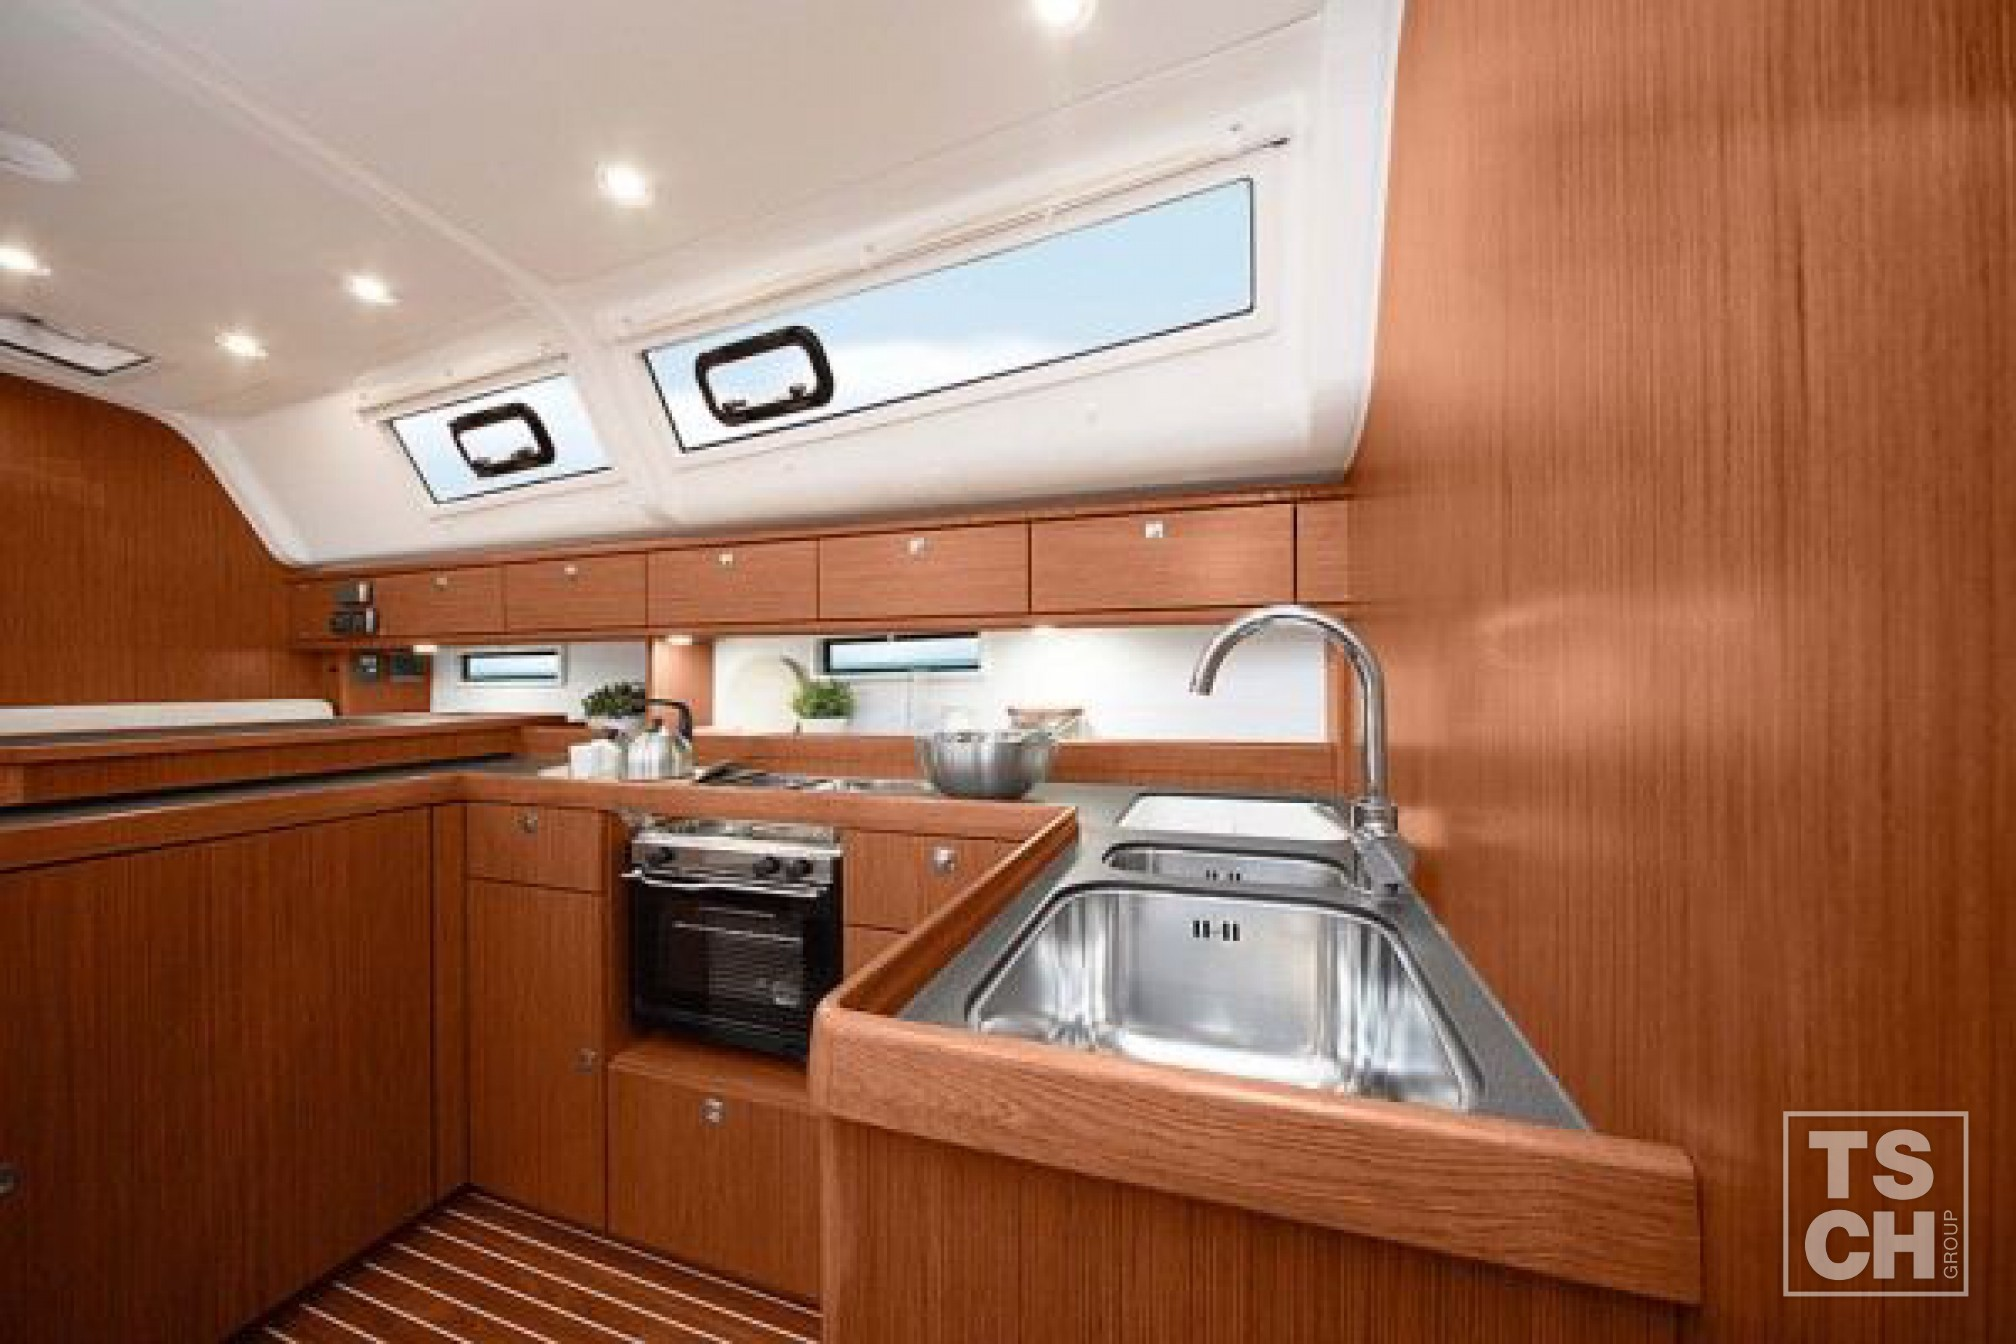 Bavaria 51 cruiser new kitchen